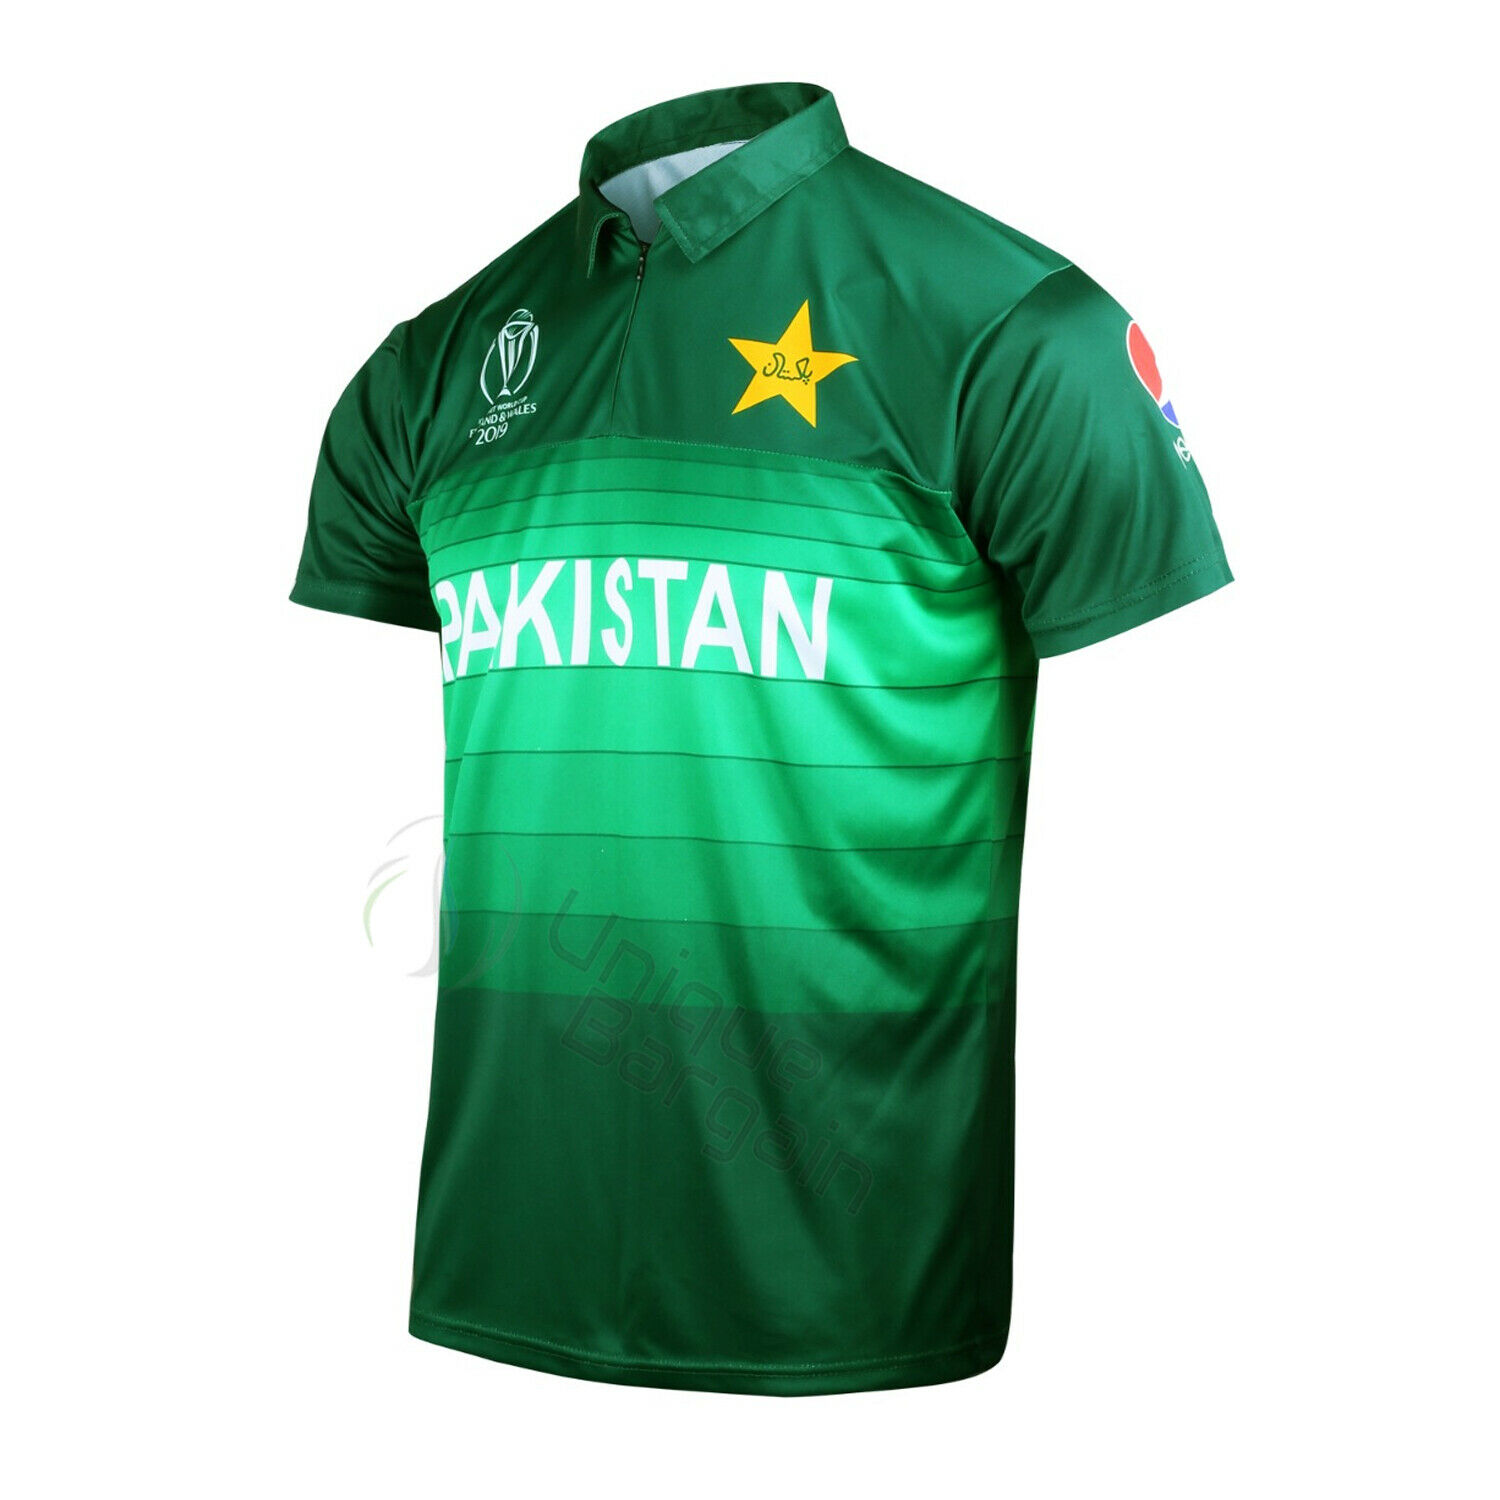 PAKISTAN CRICKET TEAM SUPPORTER JERSEY SHIRT 2019 ICC CRICKET WORLD CUP Size Med